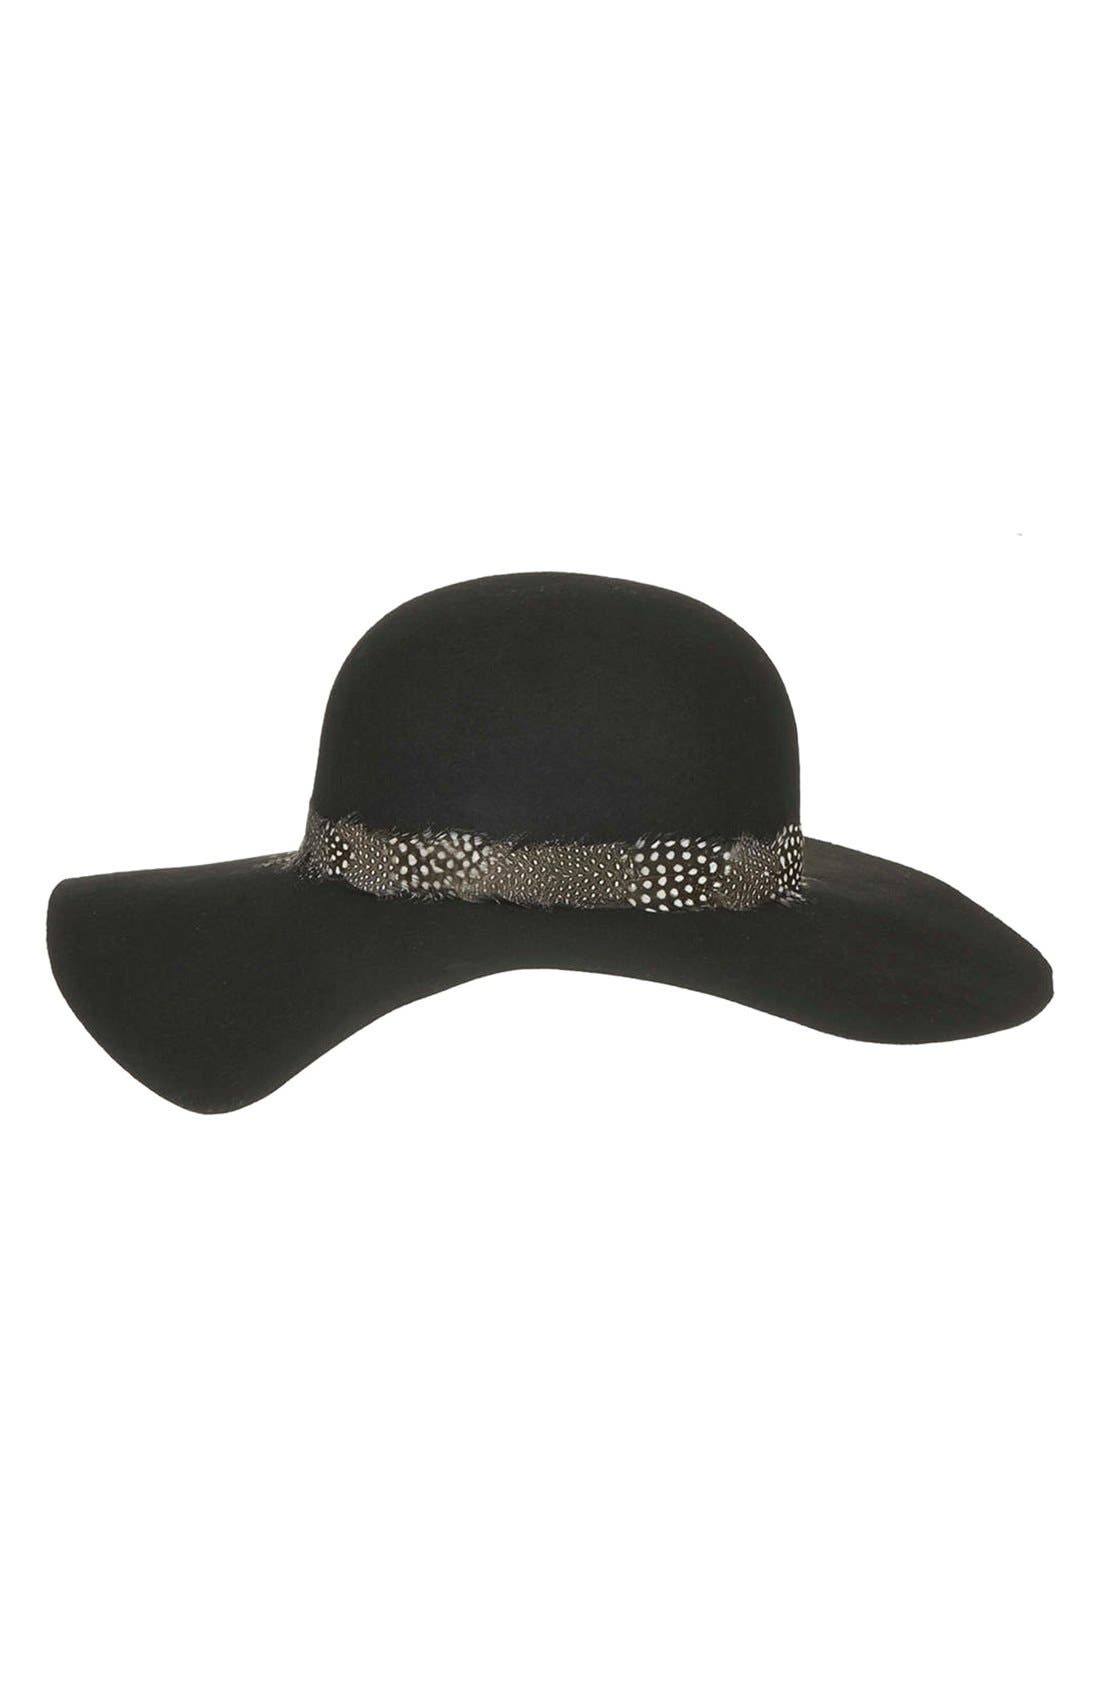 Main Image - Topshop Feather Band Floppy Hat